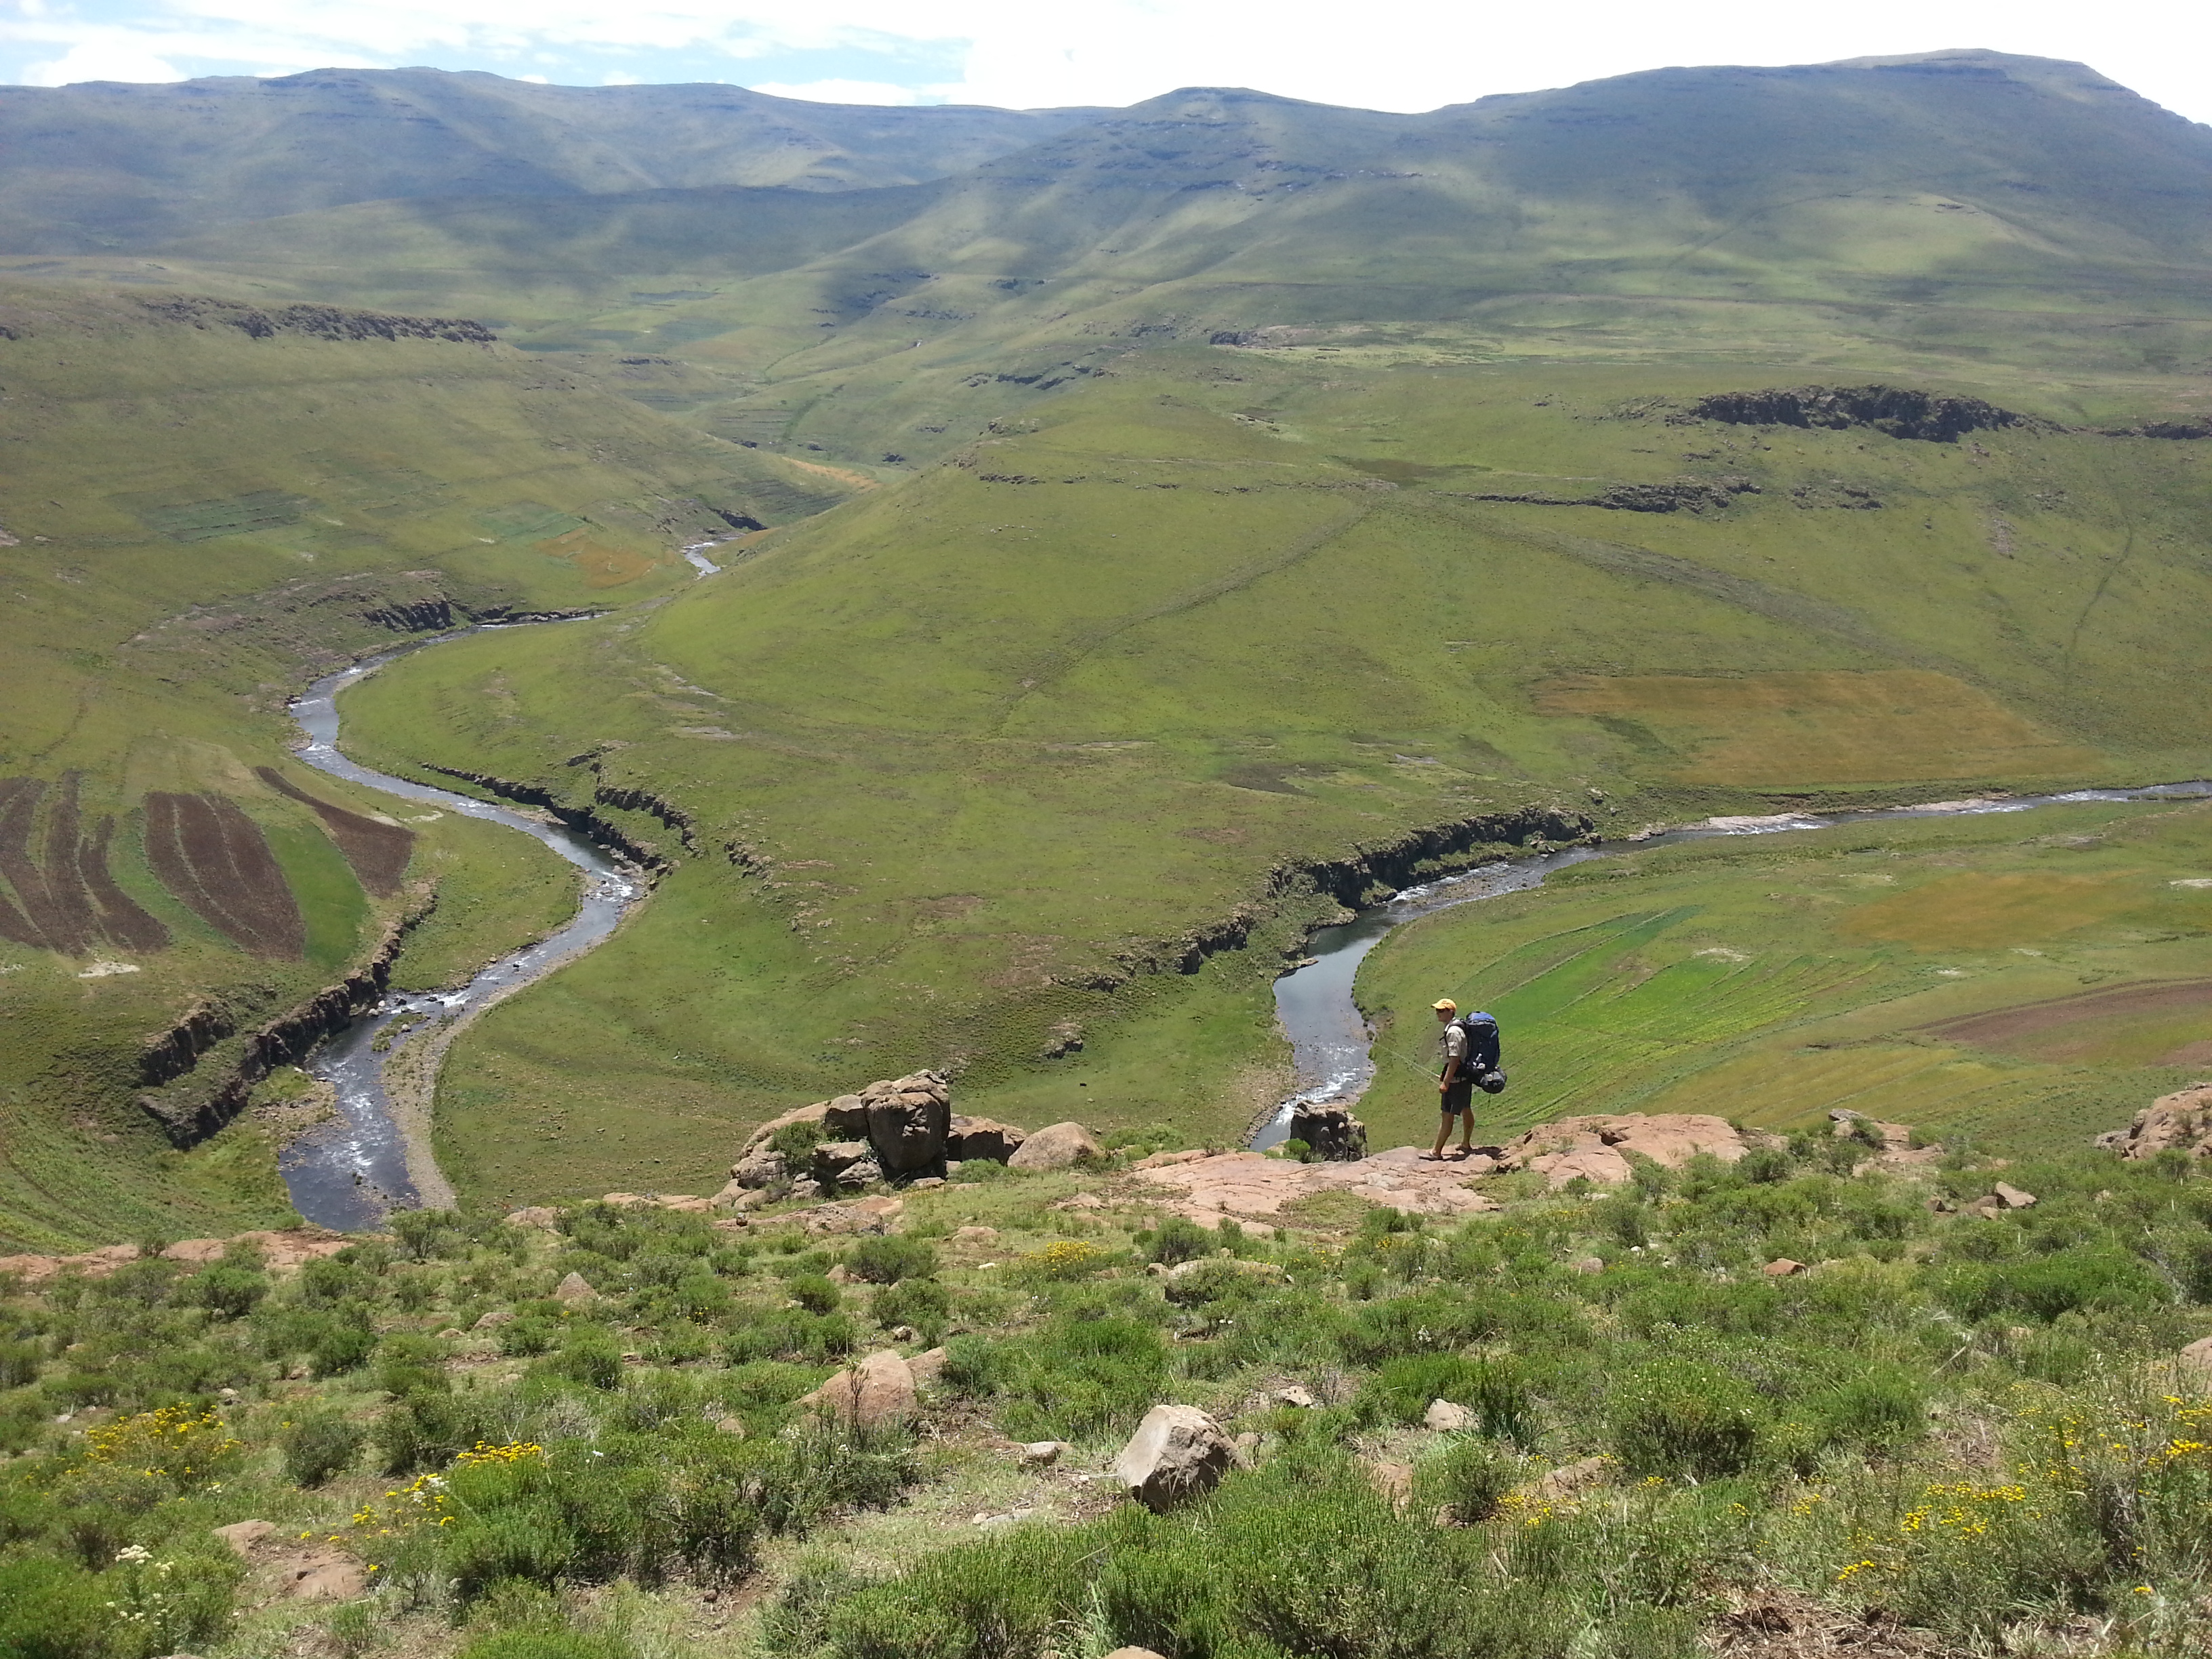 fly fishing for trout in lesotho highlands with Rex Fey.